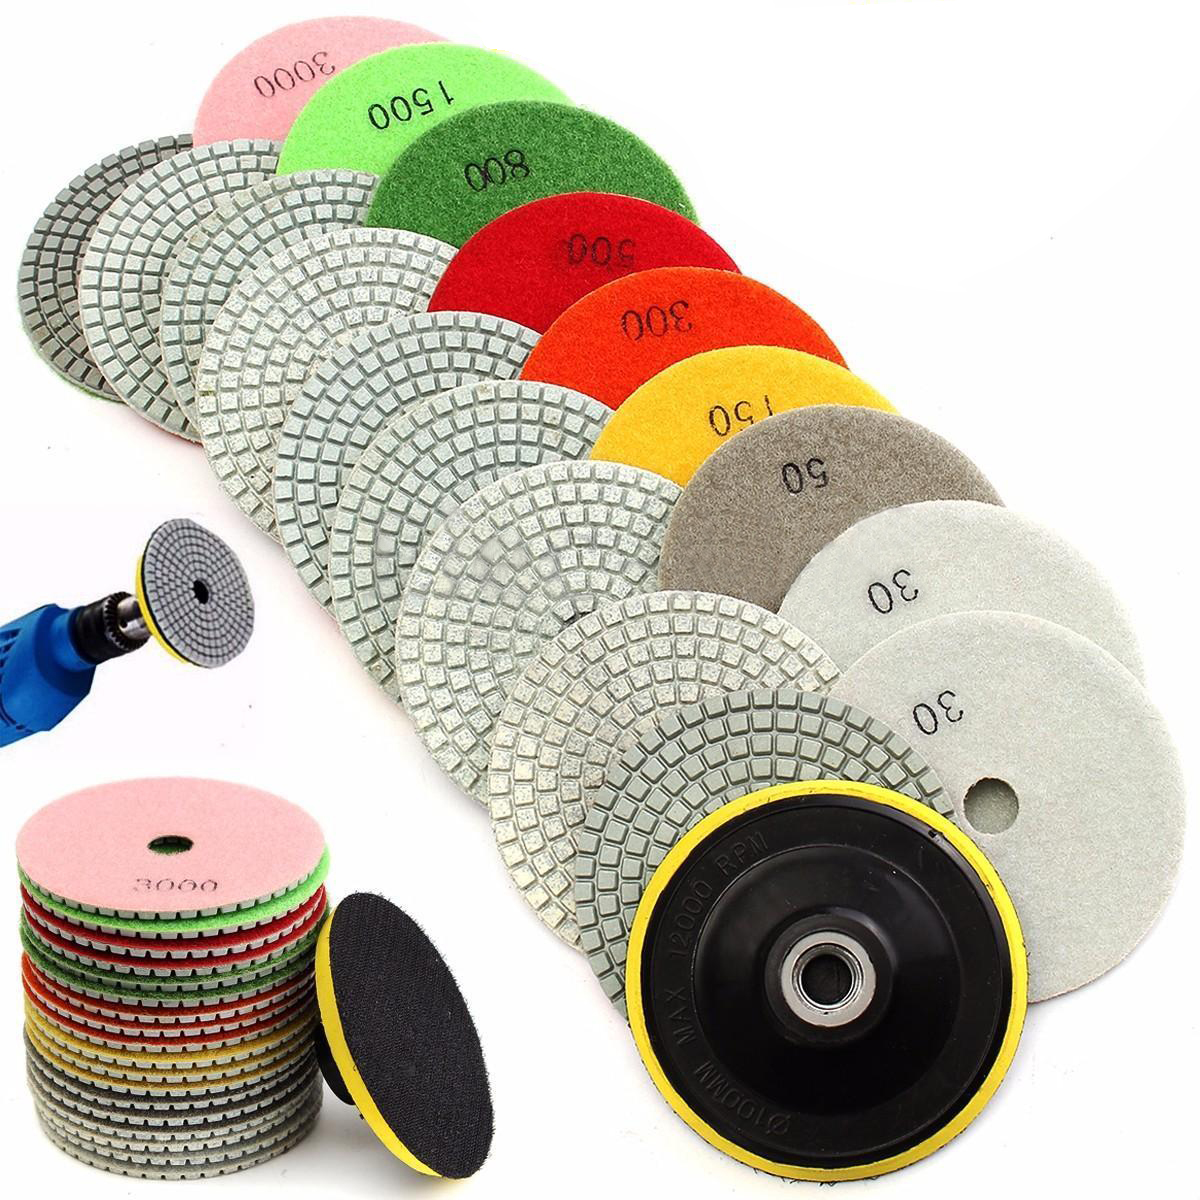 купить 19pcs 4inch Wet/Dry Diamond Polishing Pads For Granite Marble Concrete Stone Polishing Tools недорого